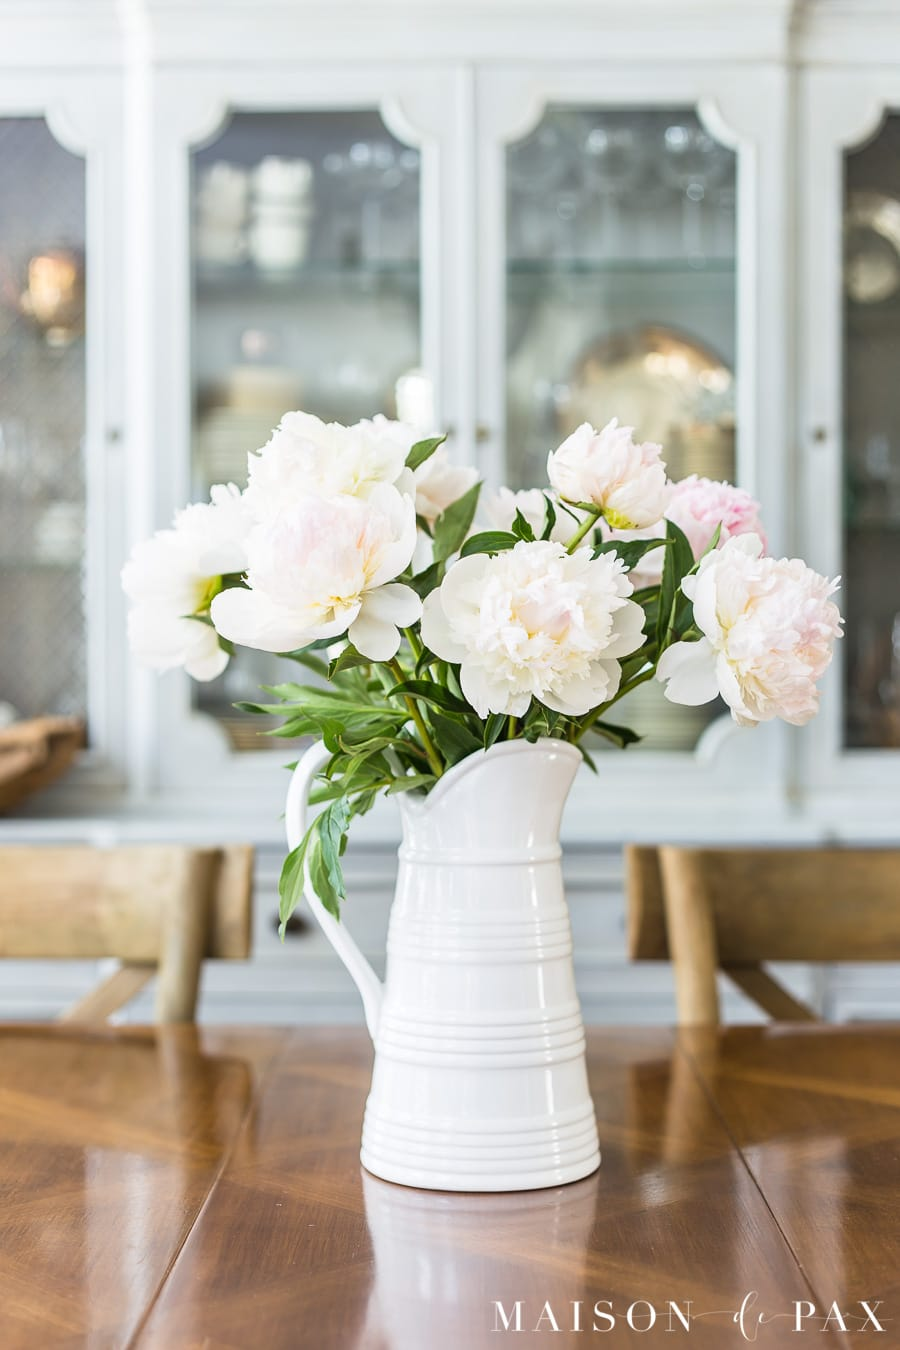 Peony centerpiece: Find out how to achieve a simple French Country dining room look. #frenchcountry #neutrals #diningroom #decorating #frenchfarmhouse #frenchdecor #diningroomdecor